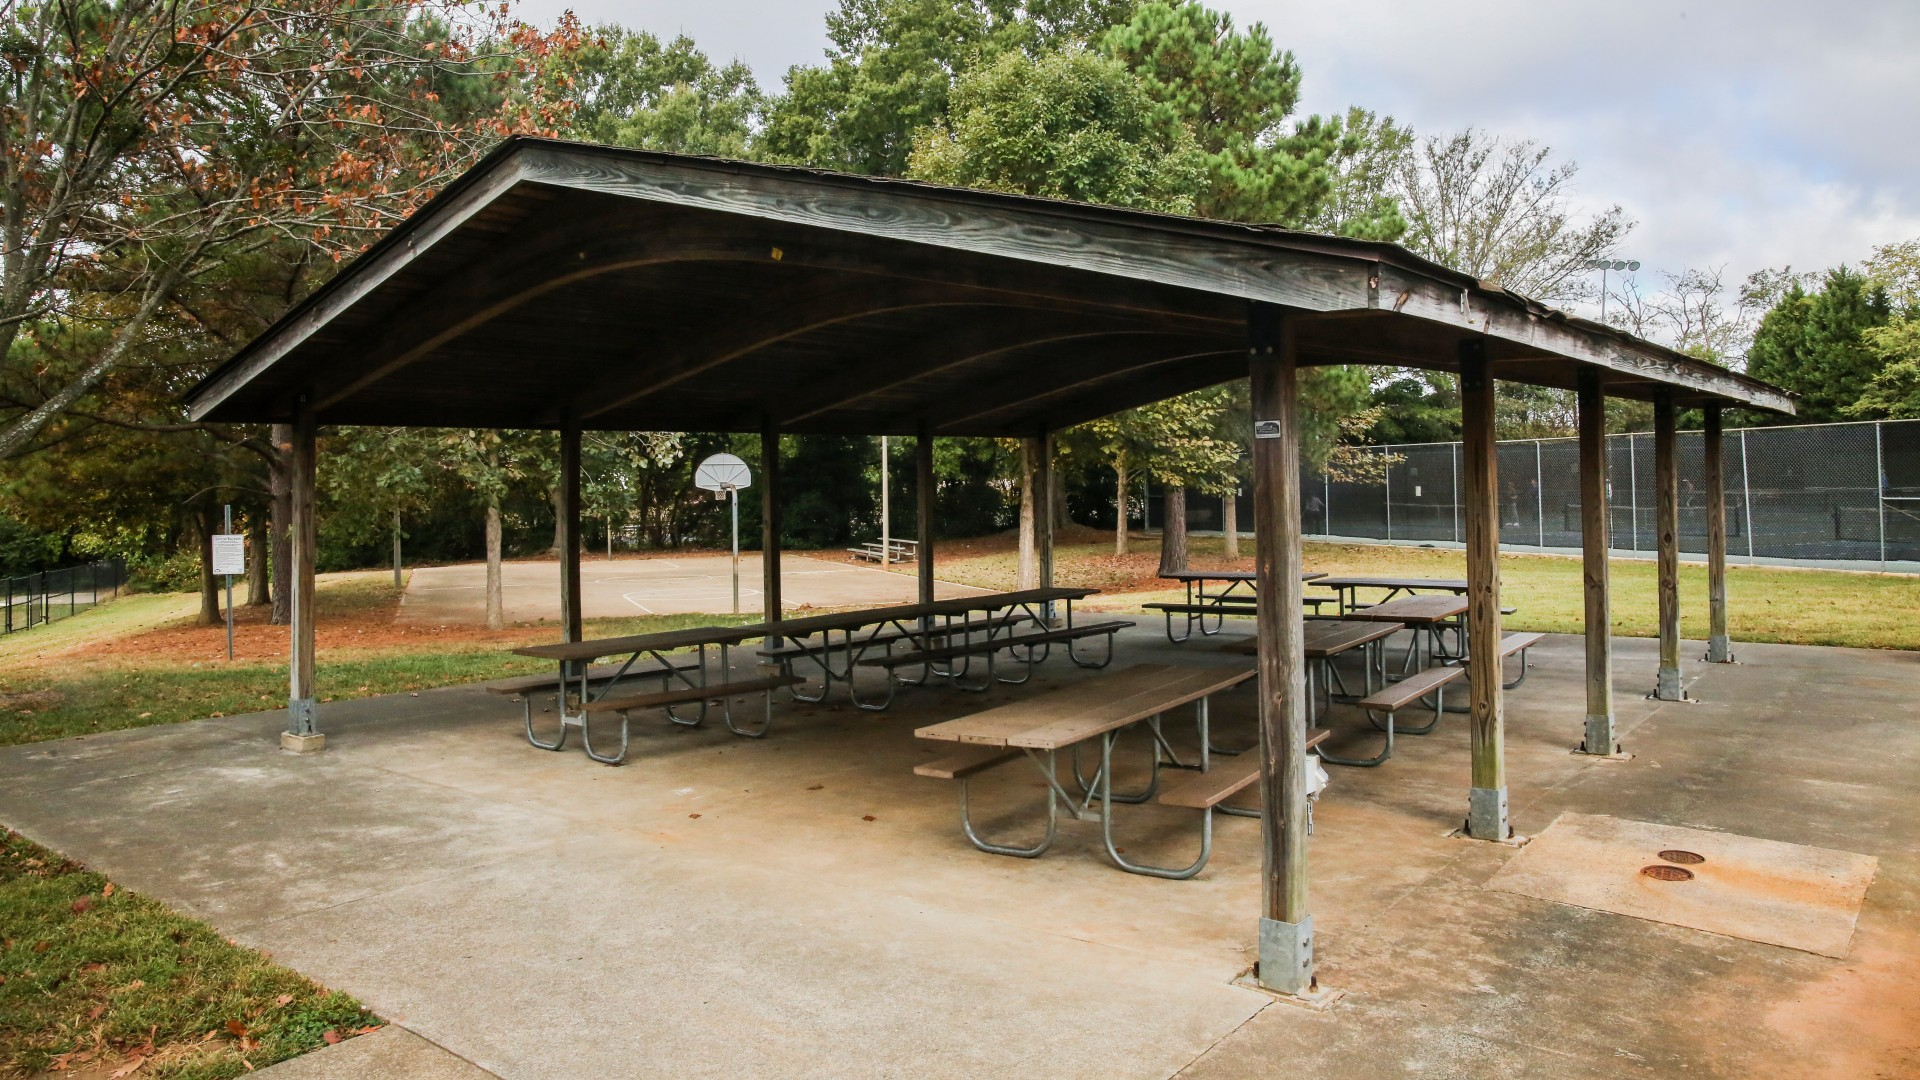 Outdoor picnic shelter at Method Road Park